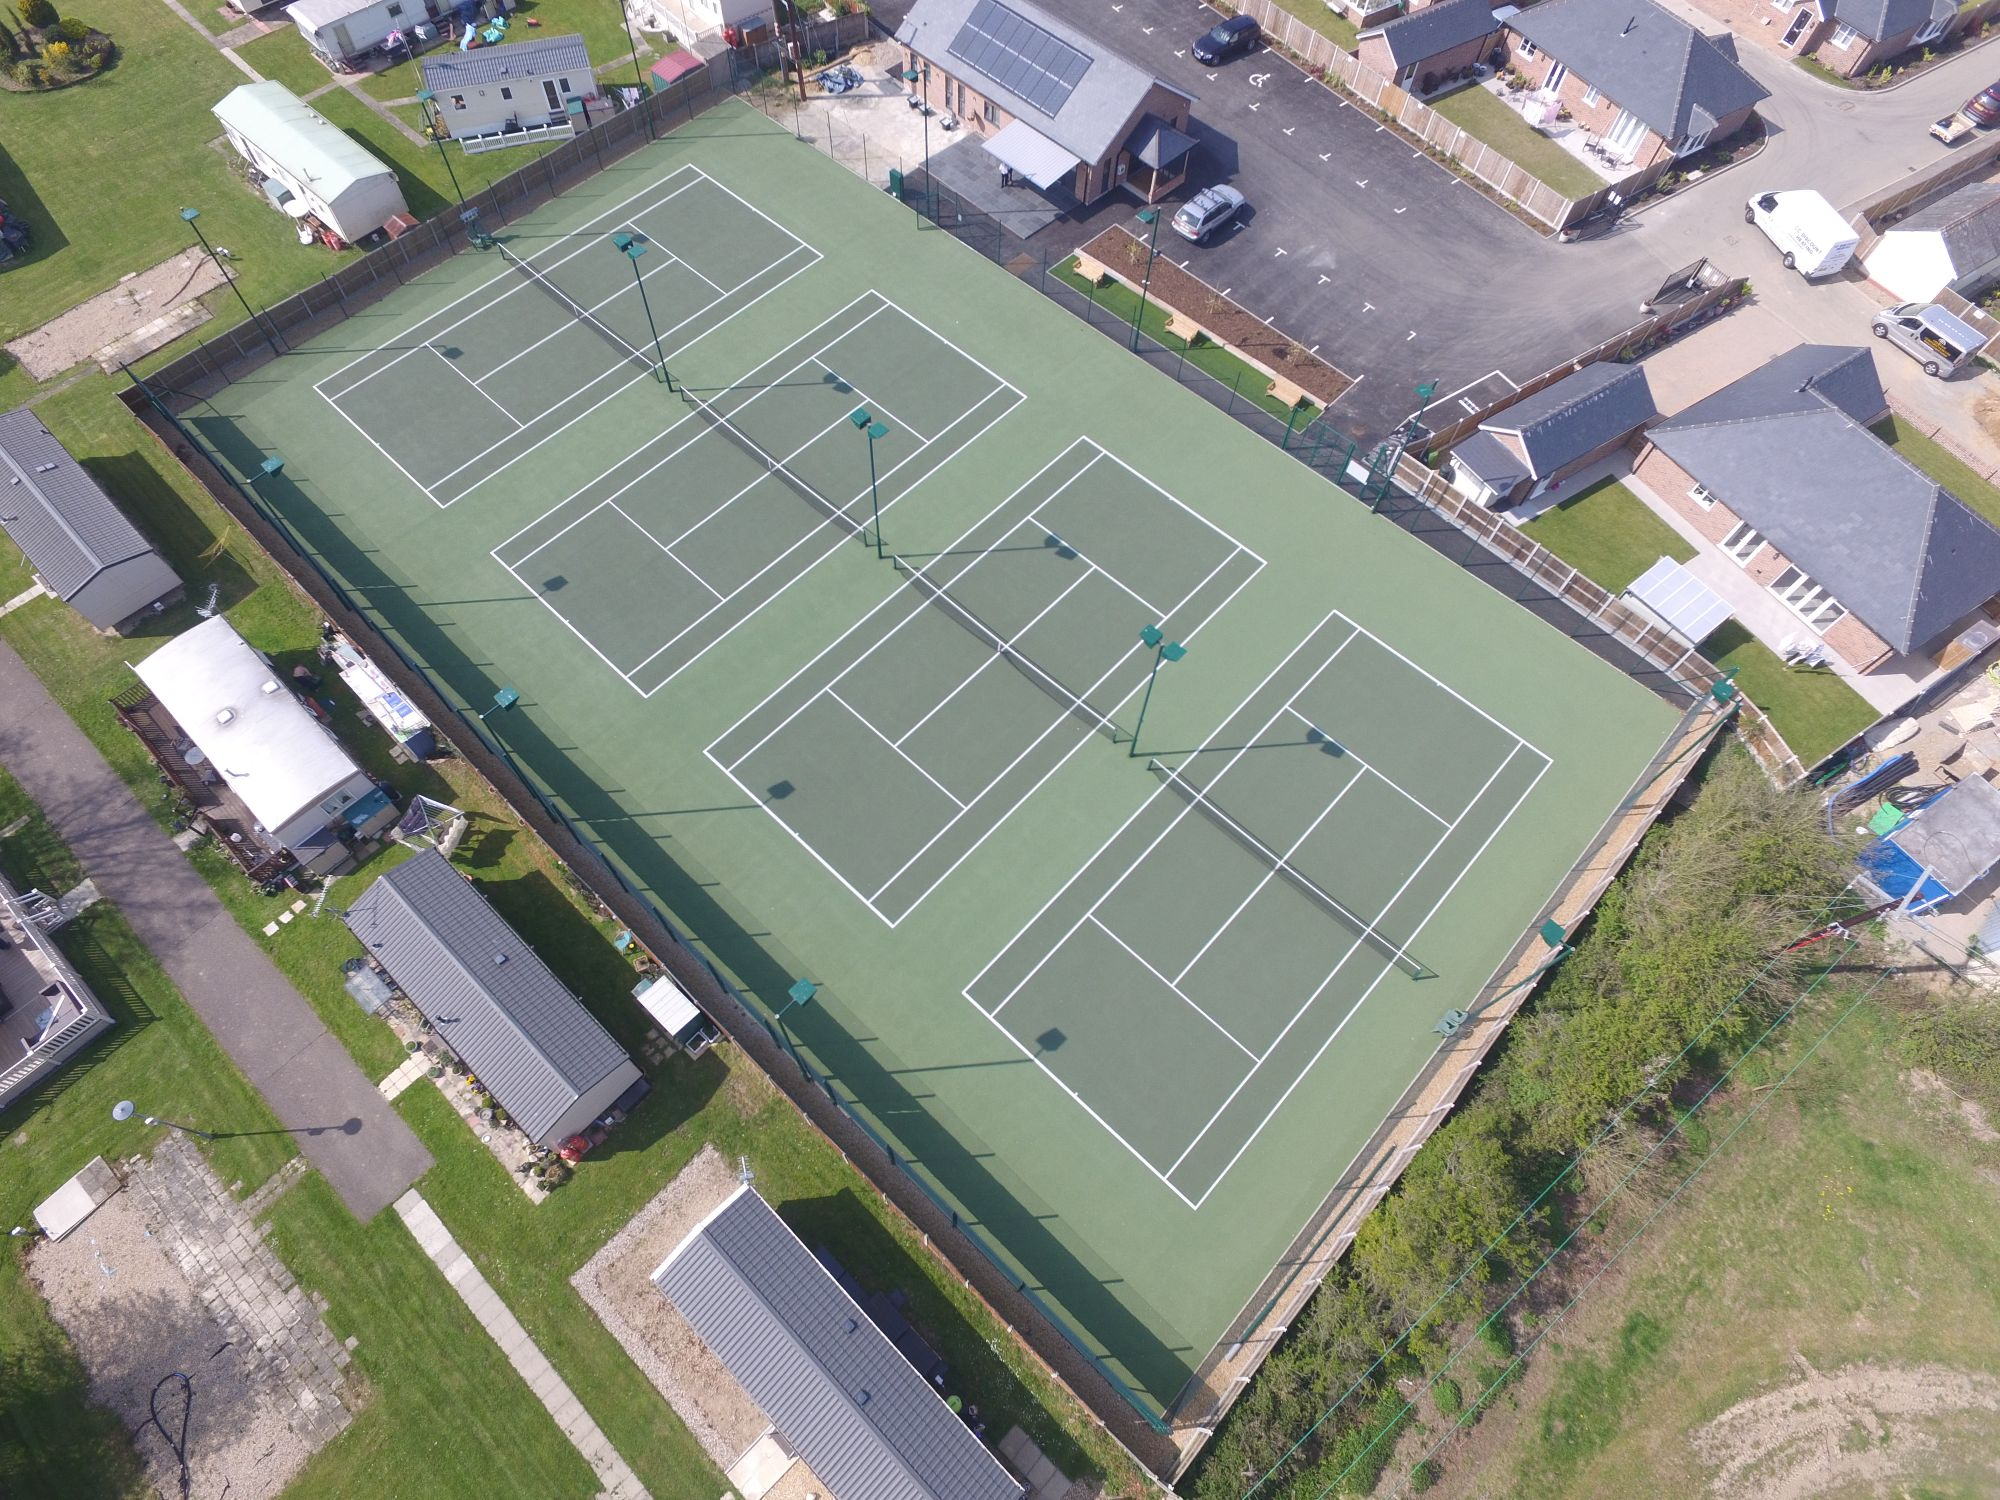 ETC Sports Surfaces supplied Little Clacton Tennis Club with hard tennis courts built to SAPCA specifications